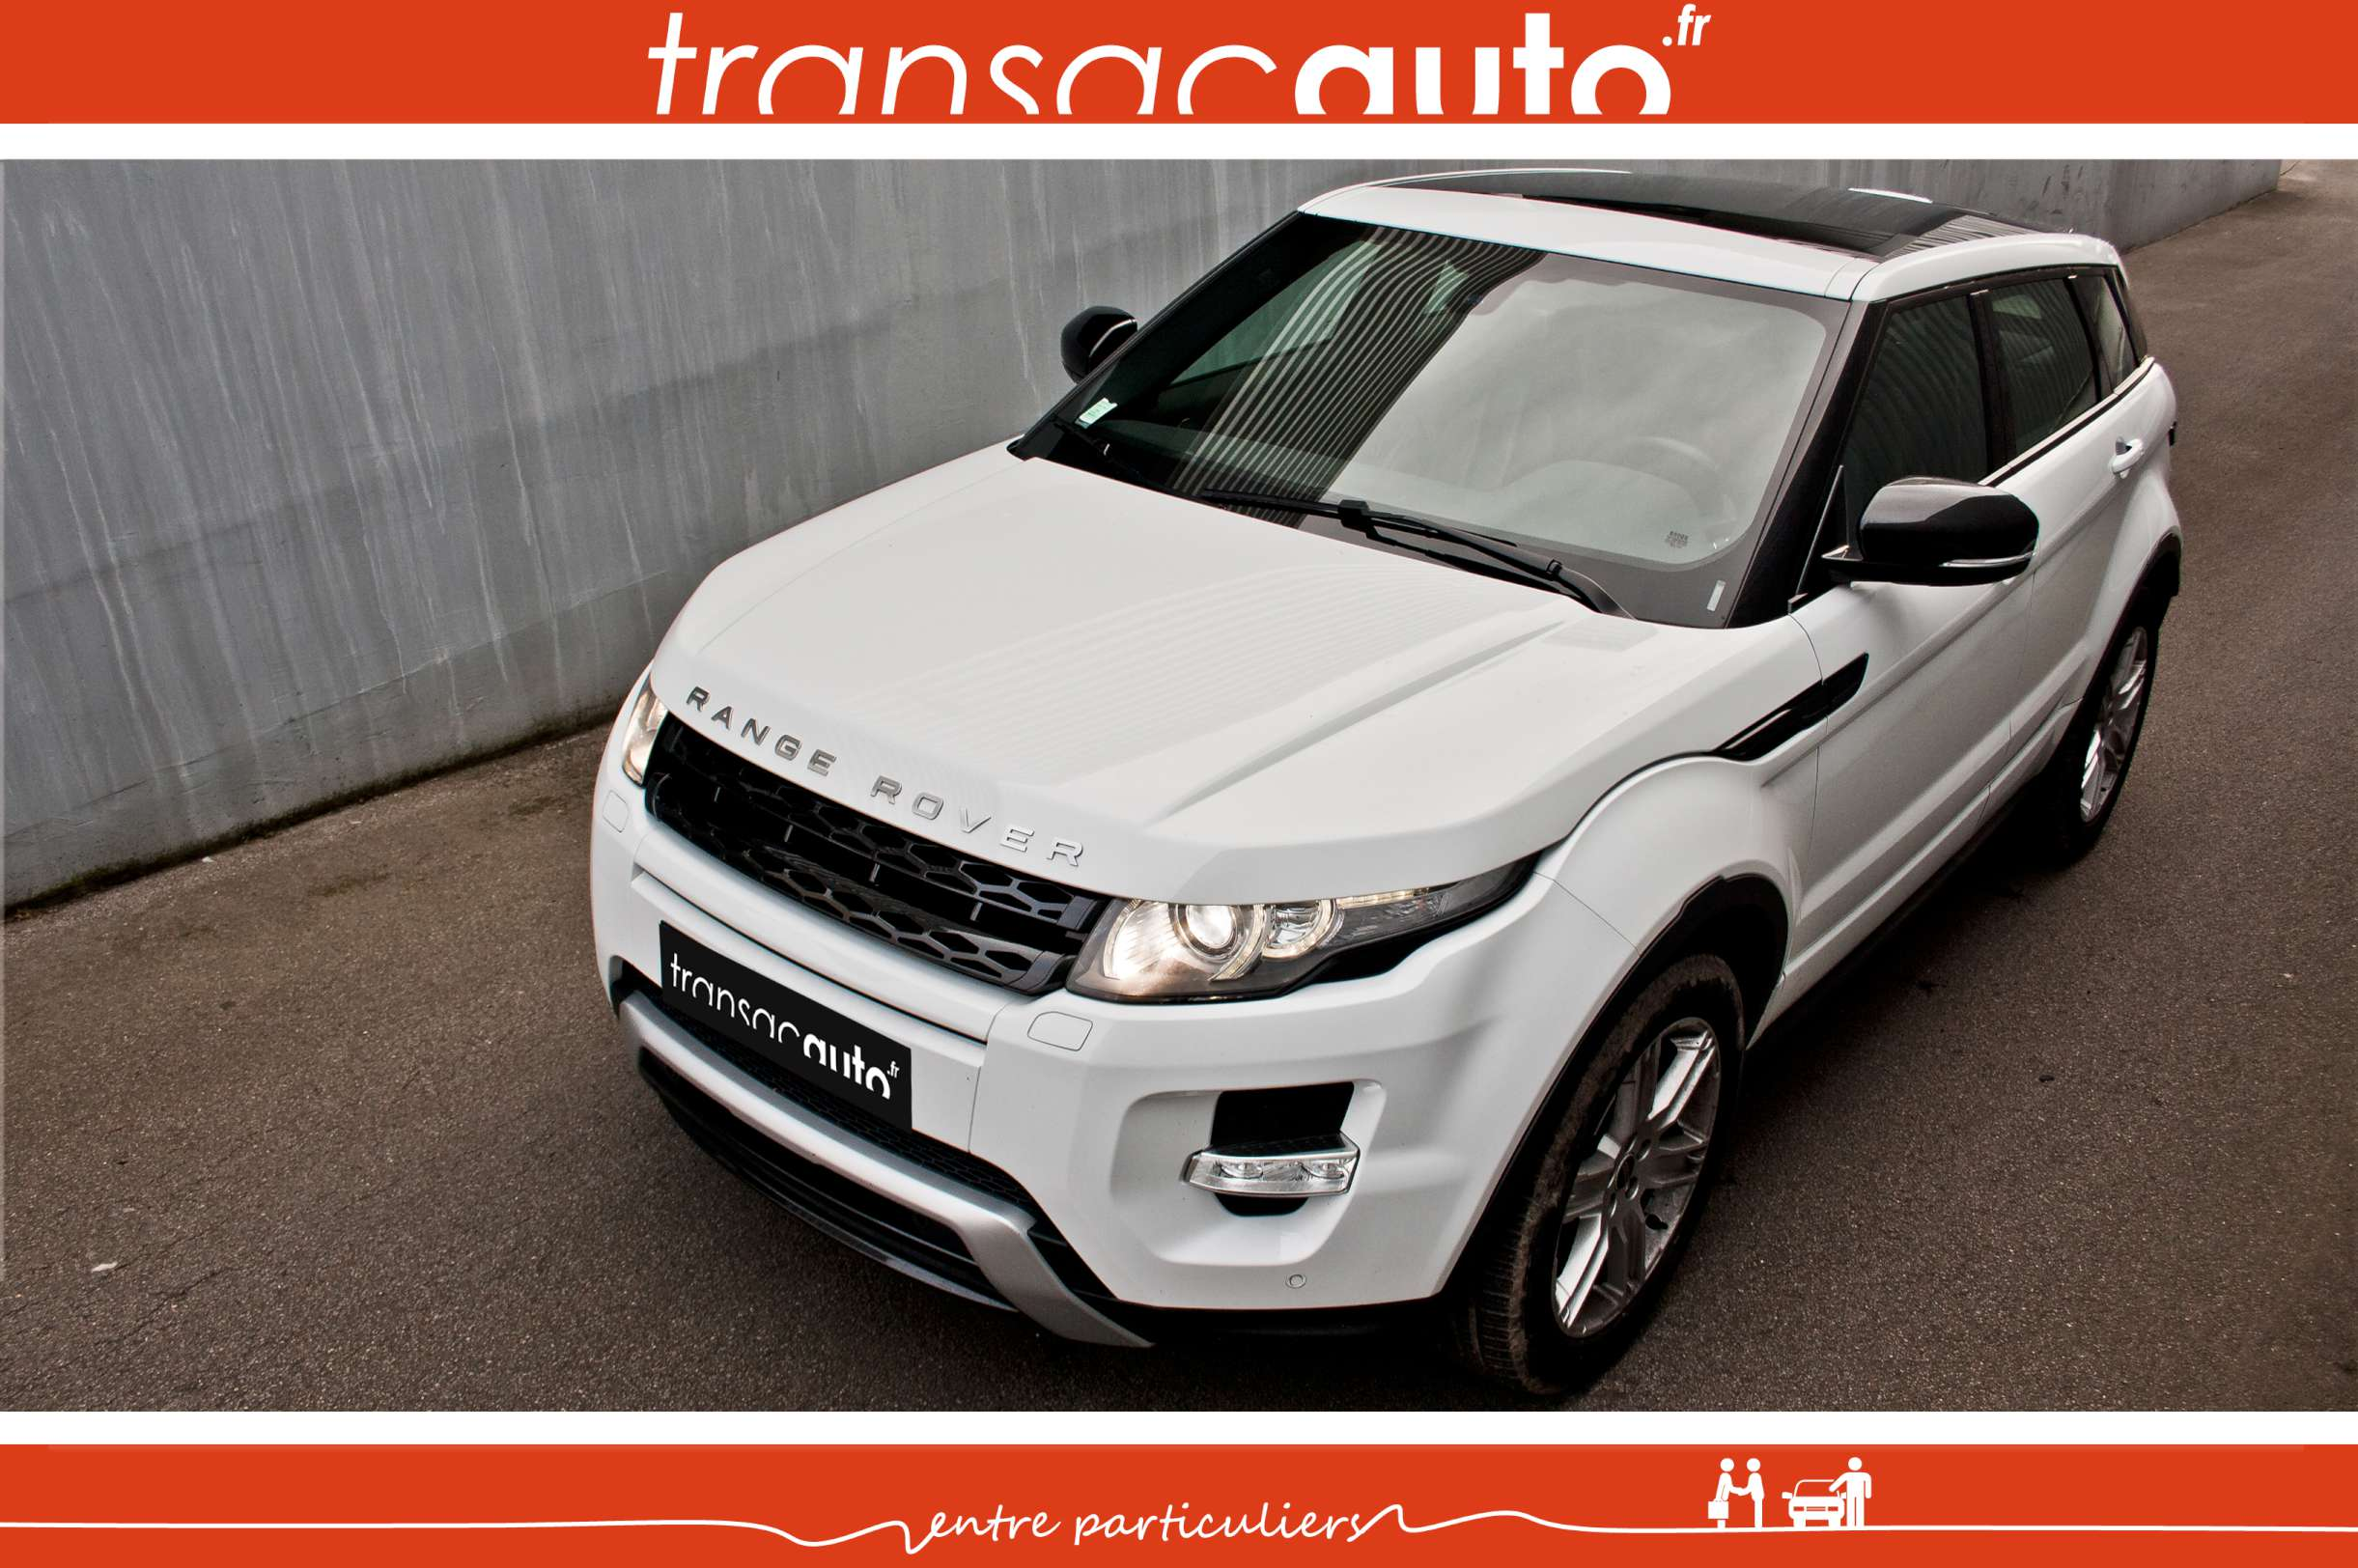 489 ads for range rover evoque in Cars for Sale